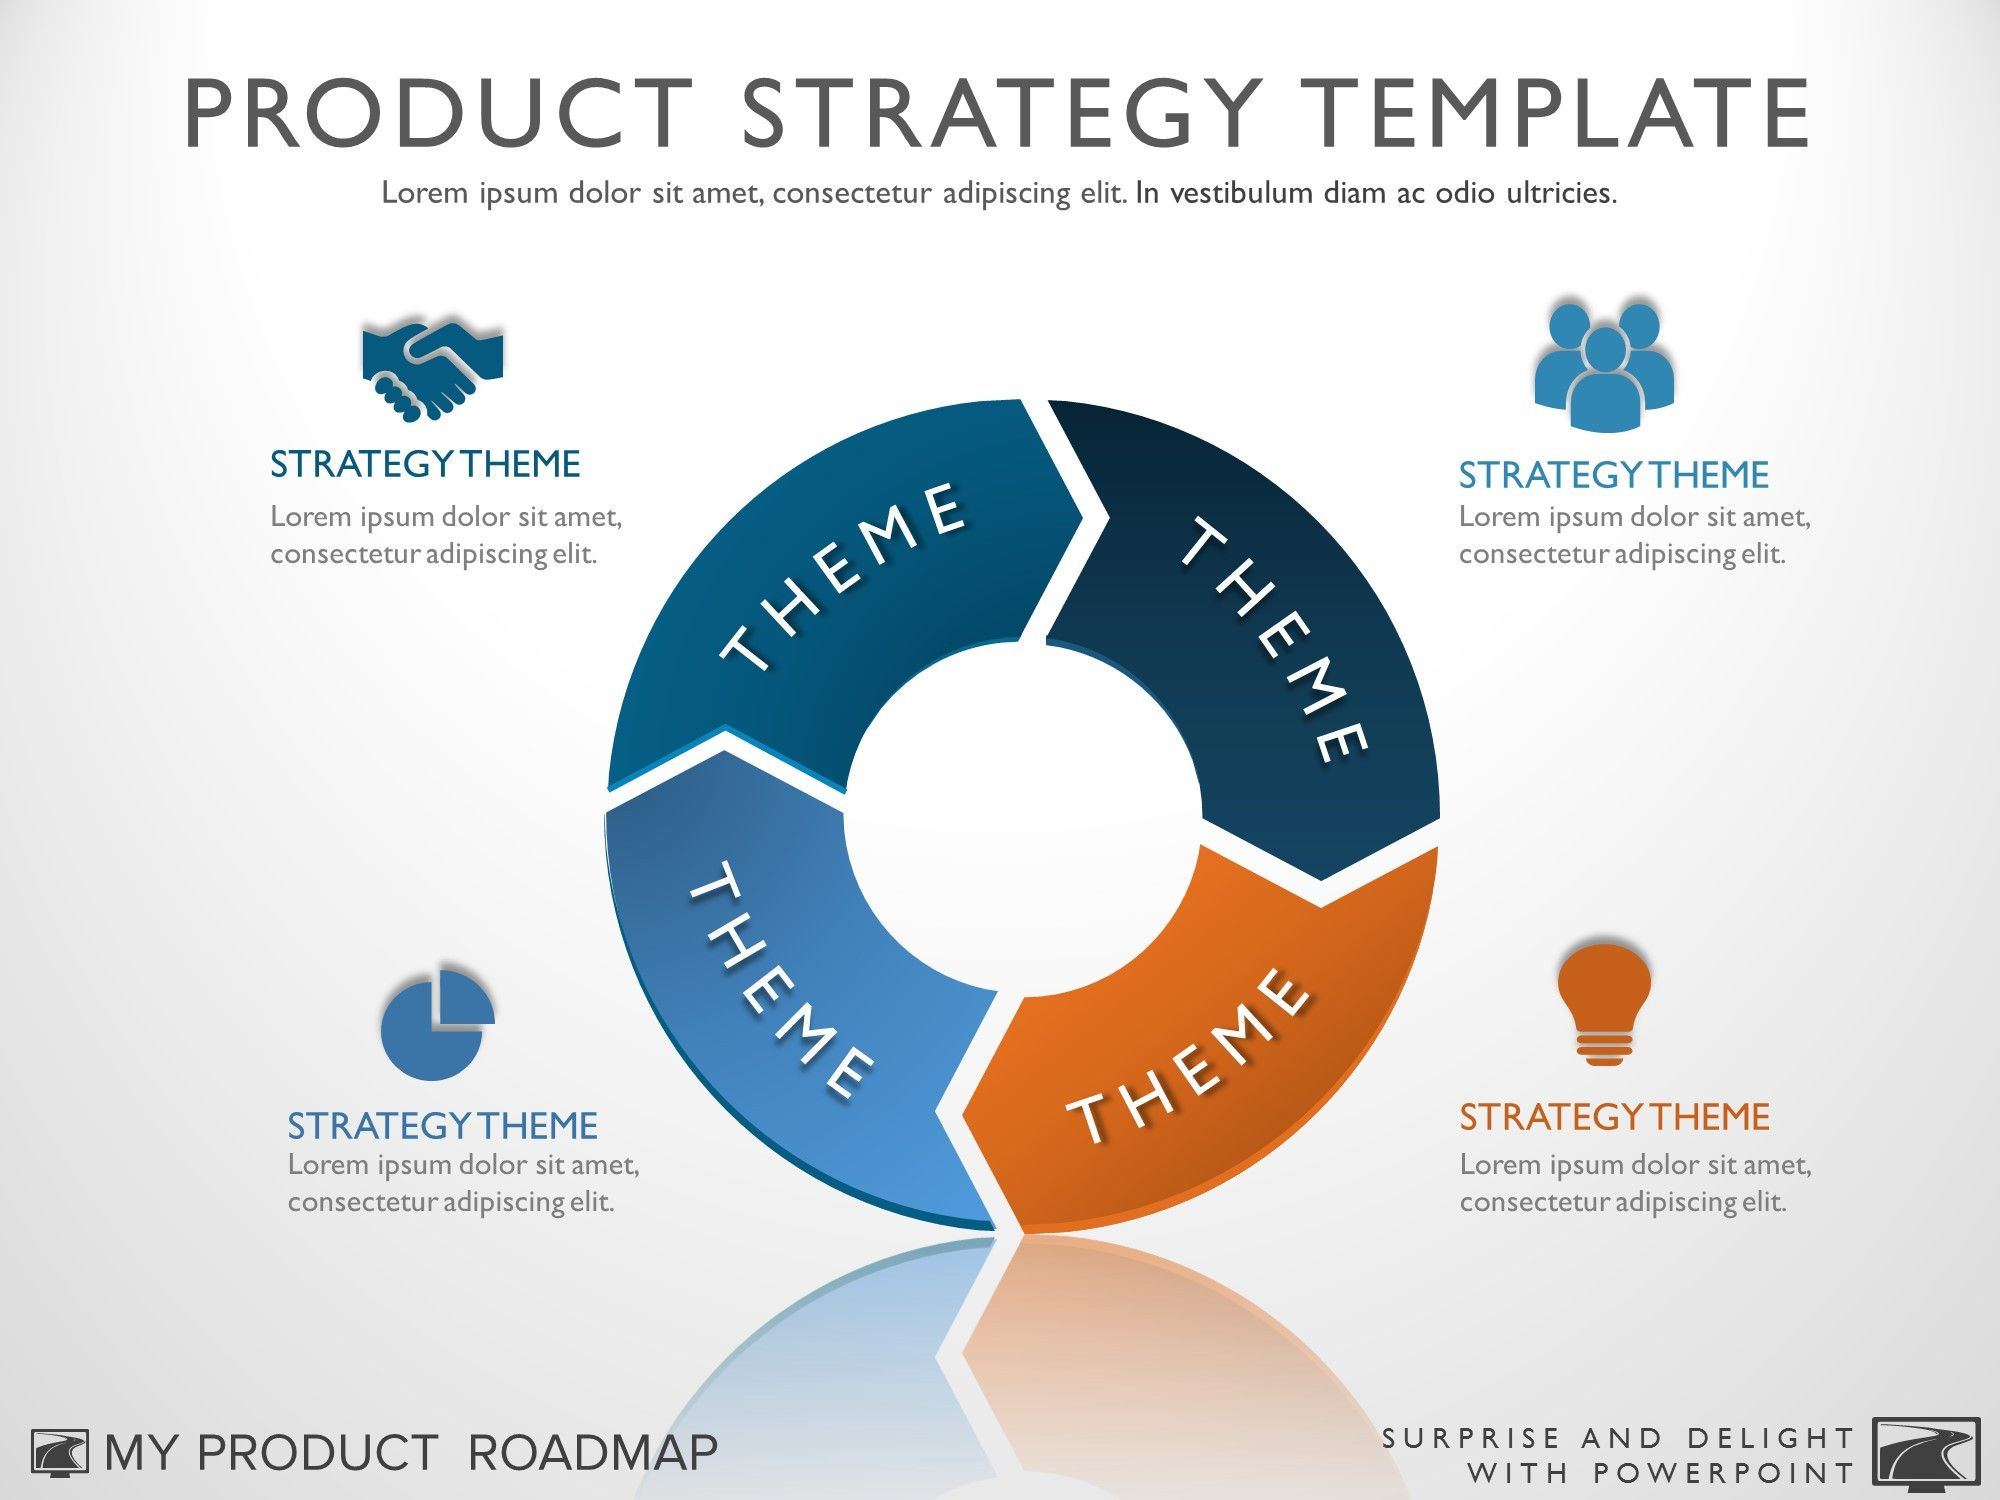 Product strategy template my product roadmap strategy product strategy template my product roadmap pronofoot35fo Gallery